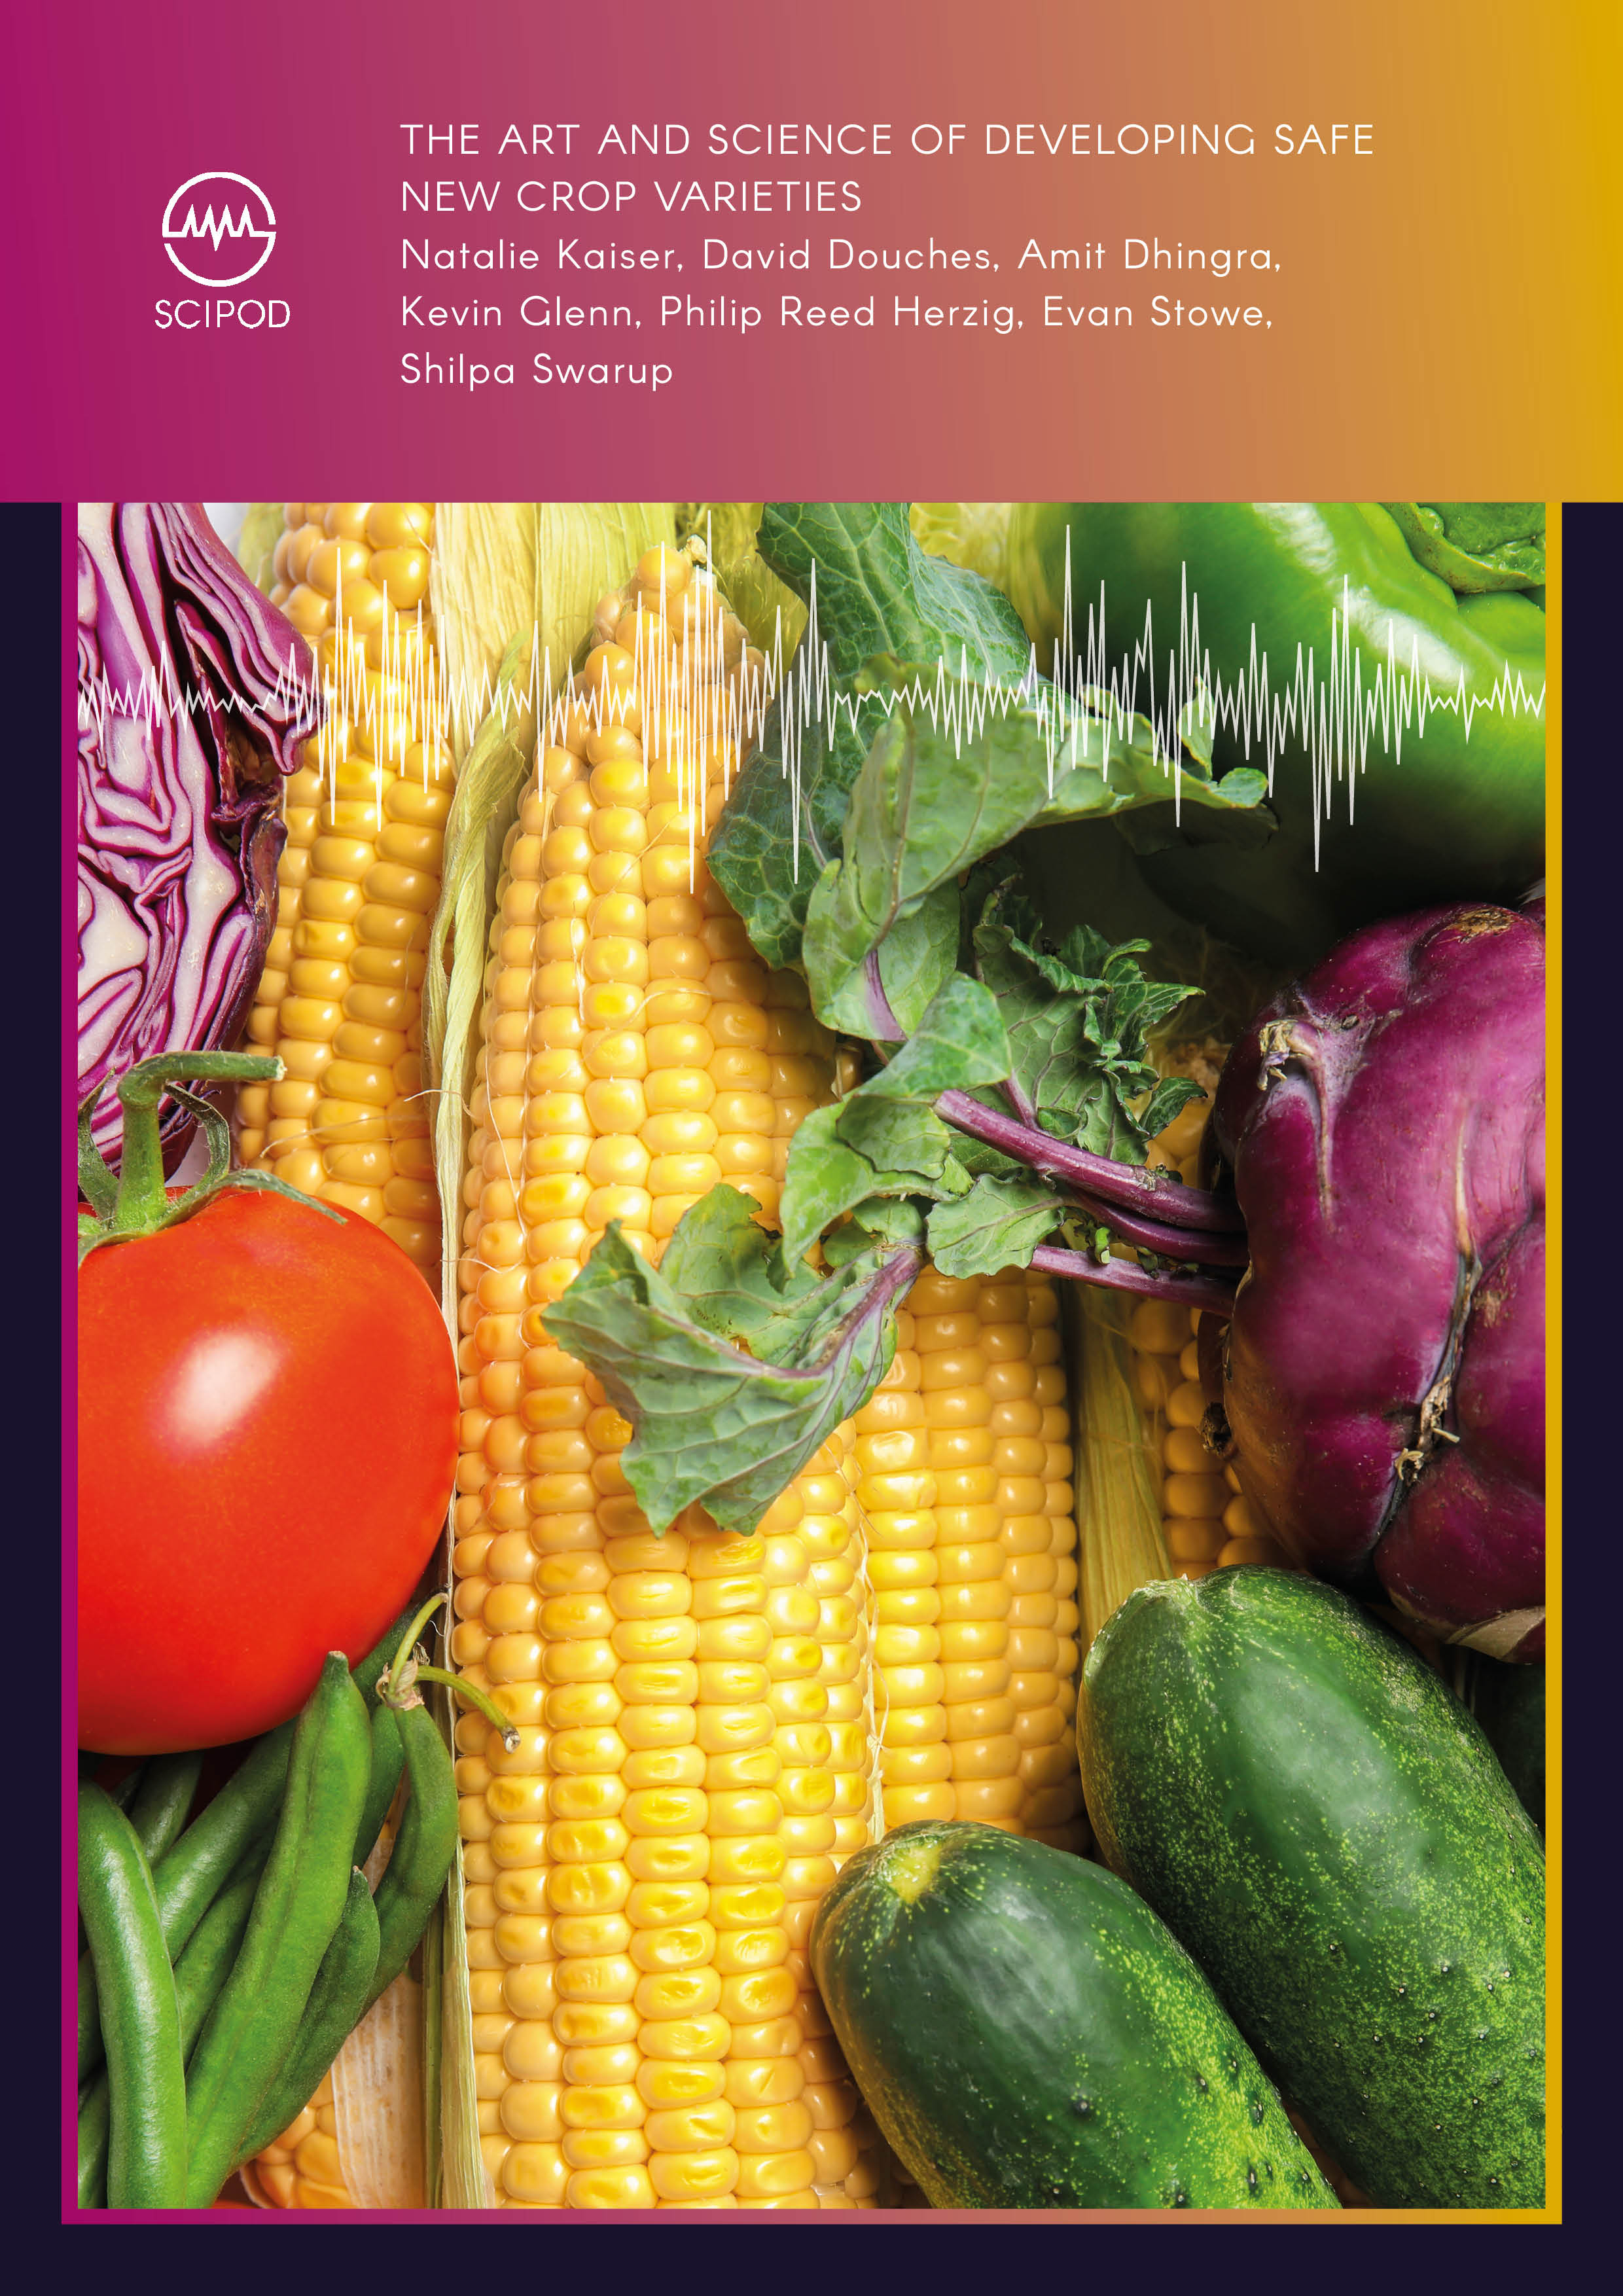 The Art and Science of Developing Safe New Crop Varieties